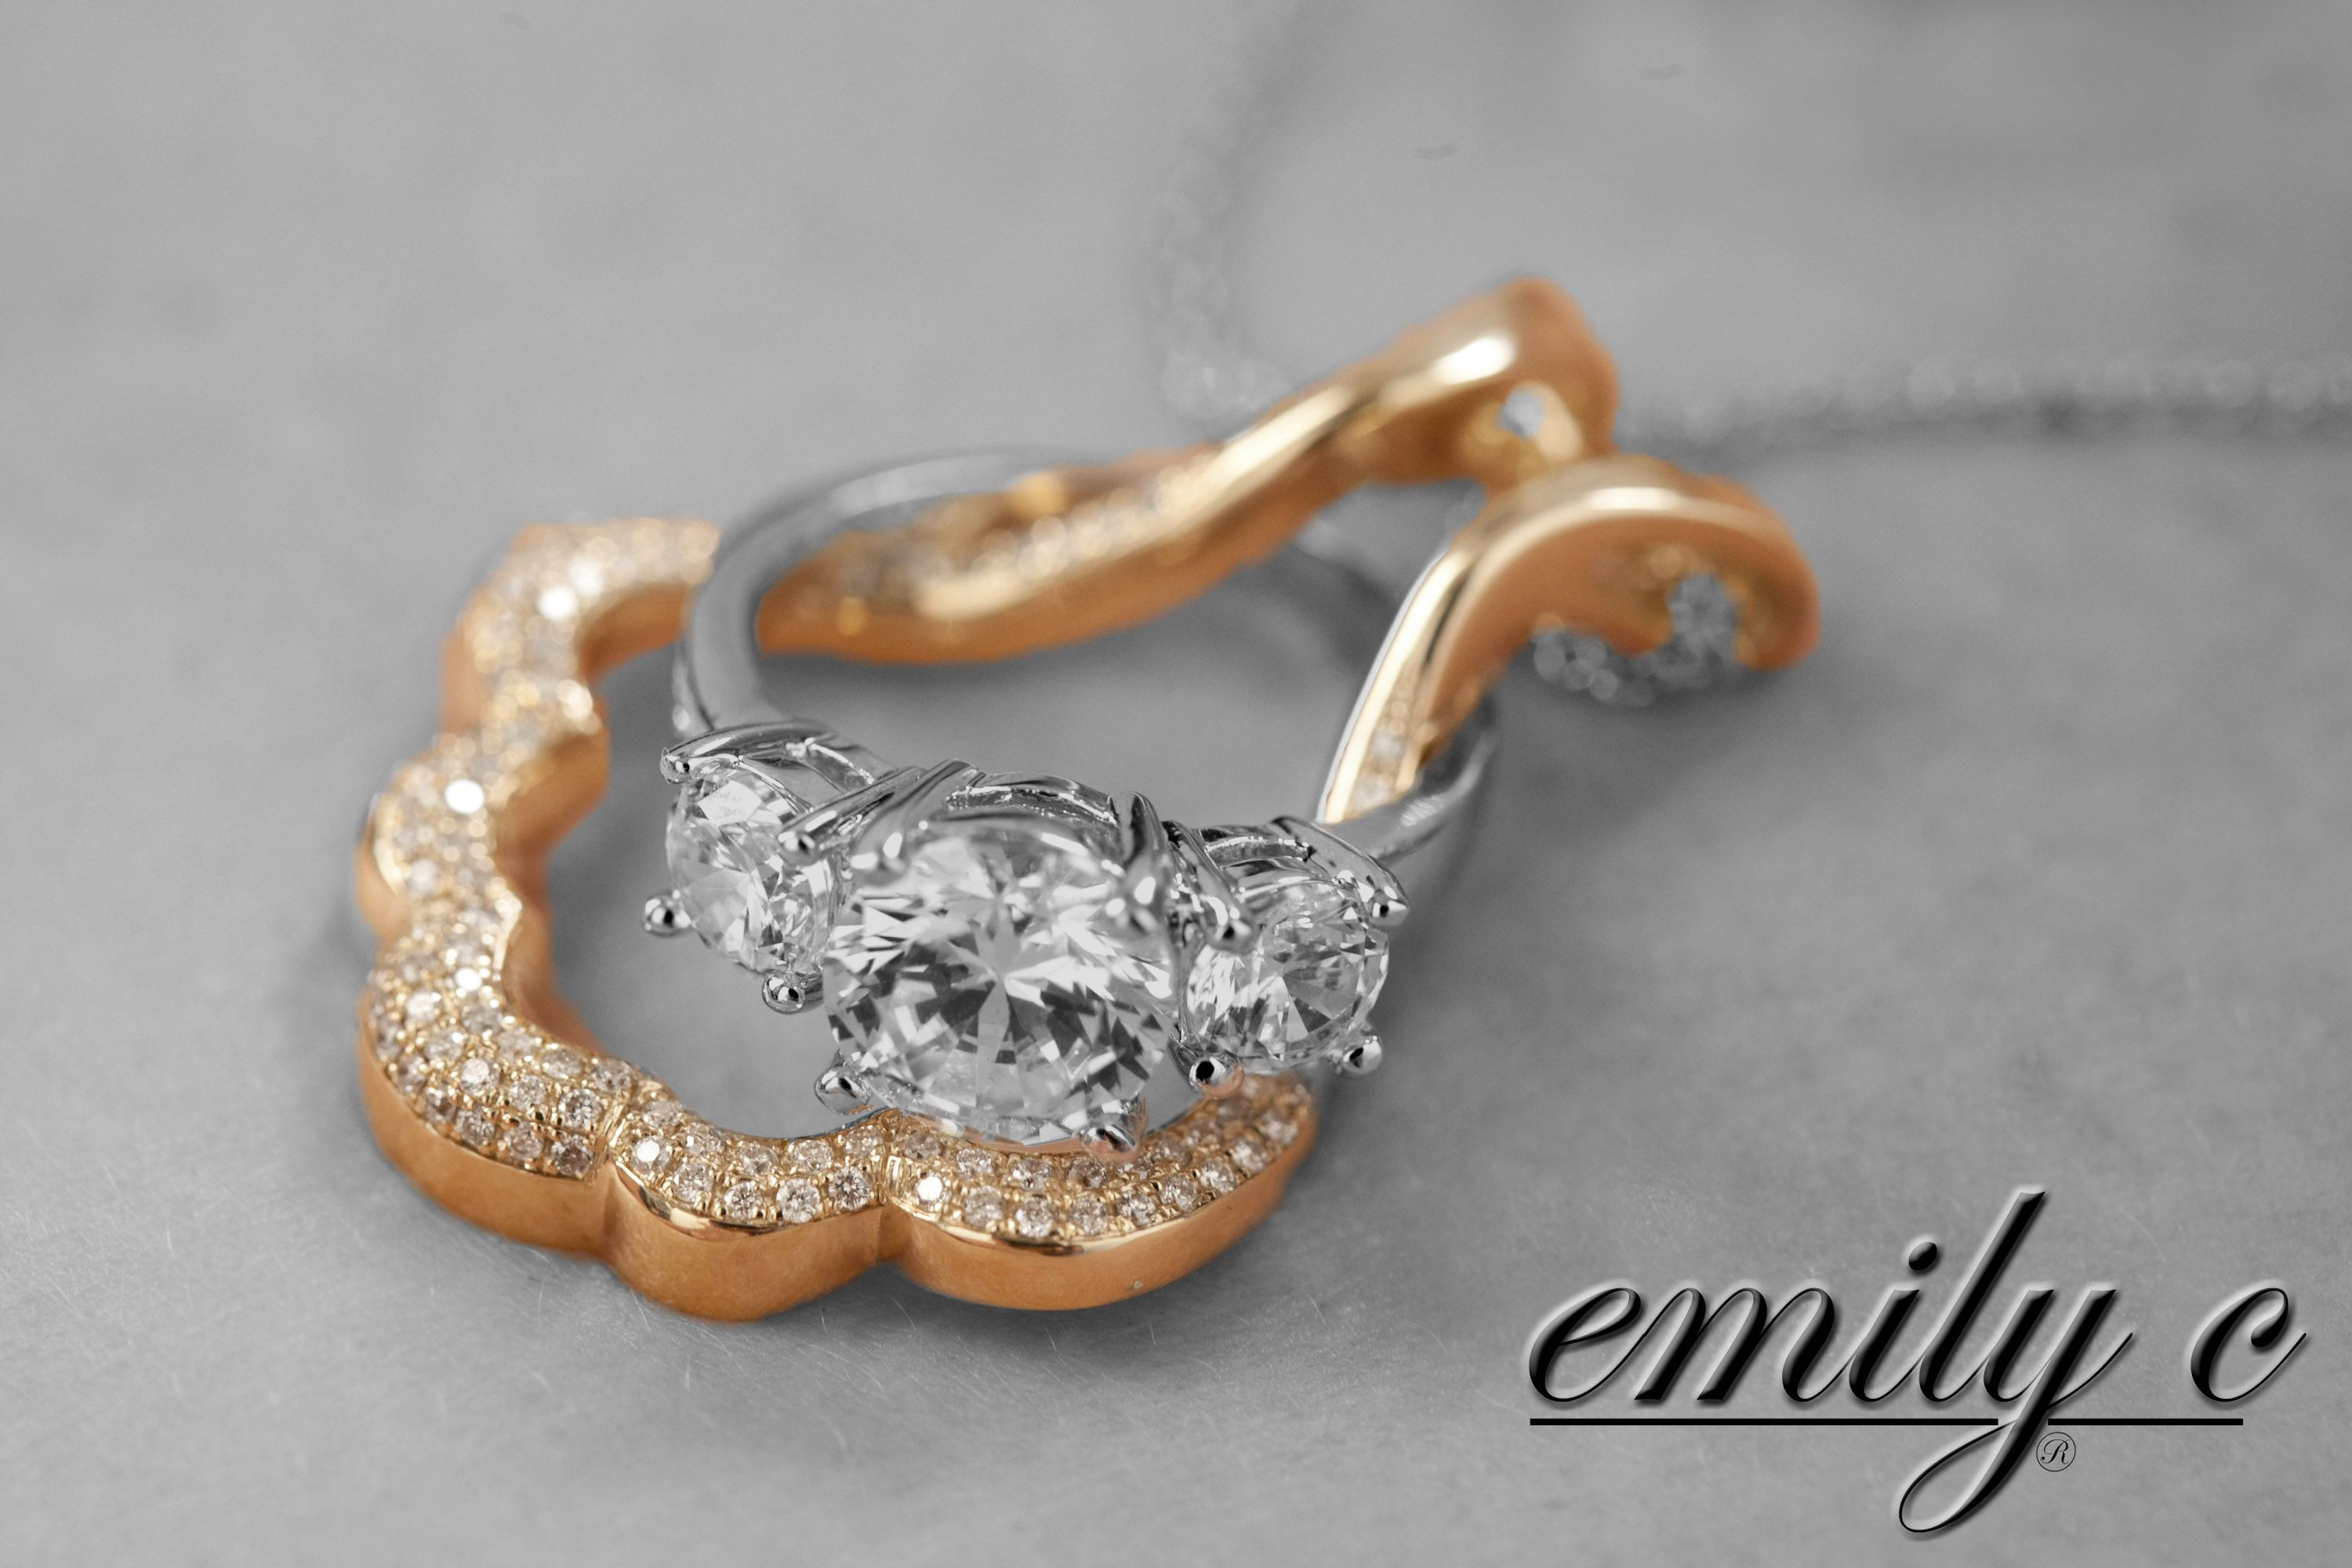 This Site Has Diffe Styles Of Necklaces That Will Safely Hold A Valuable Ring I Want For Pregnancy So Can Still Wear My Wedding The Whole